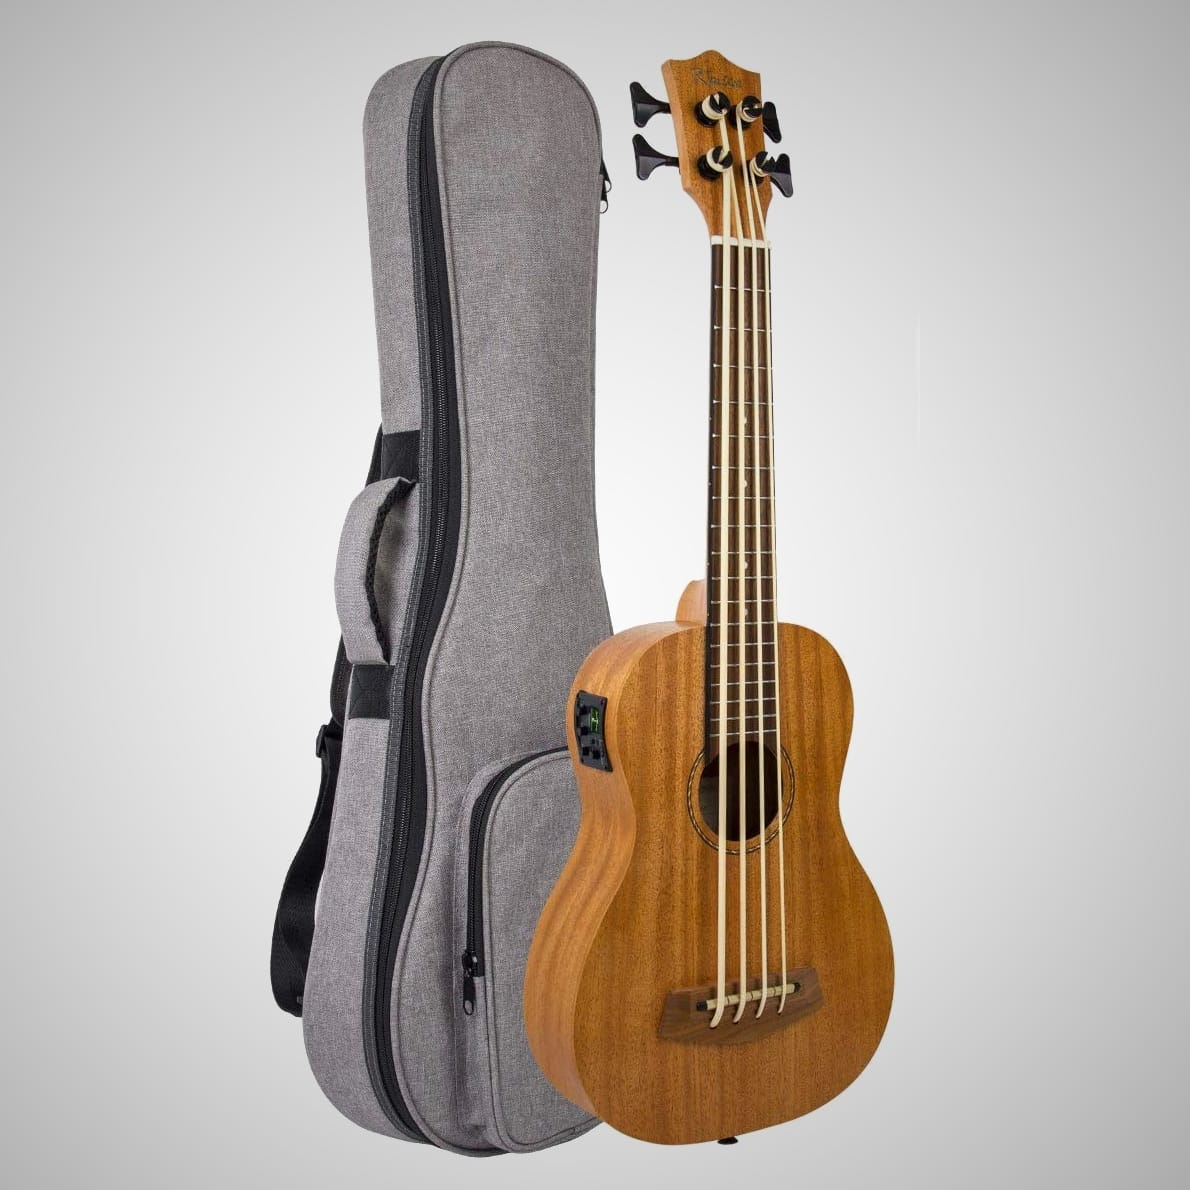 Kmise Ukulele Bass with Gig Bag